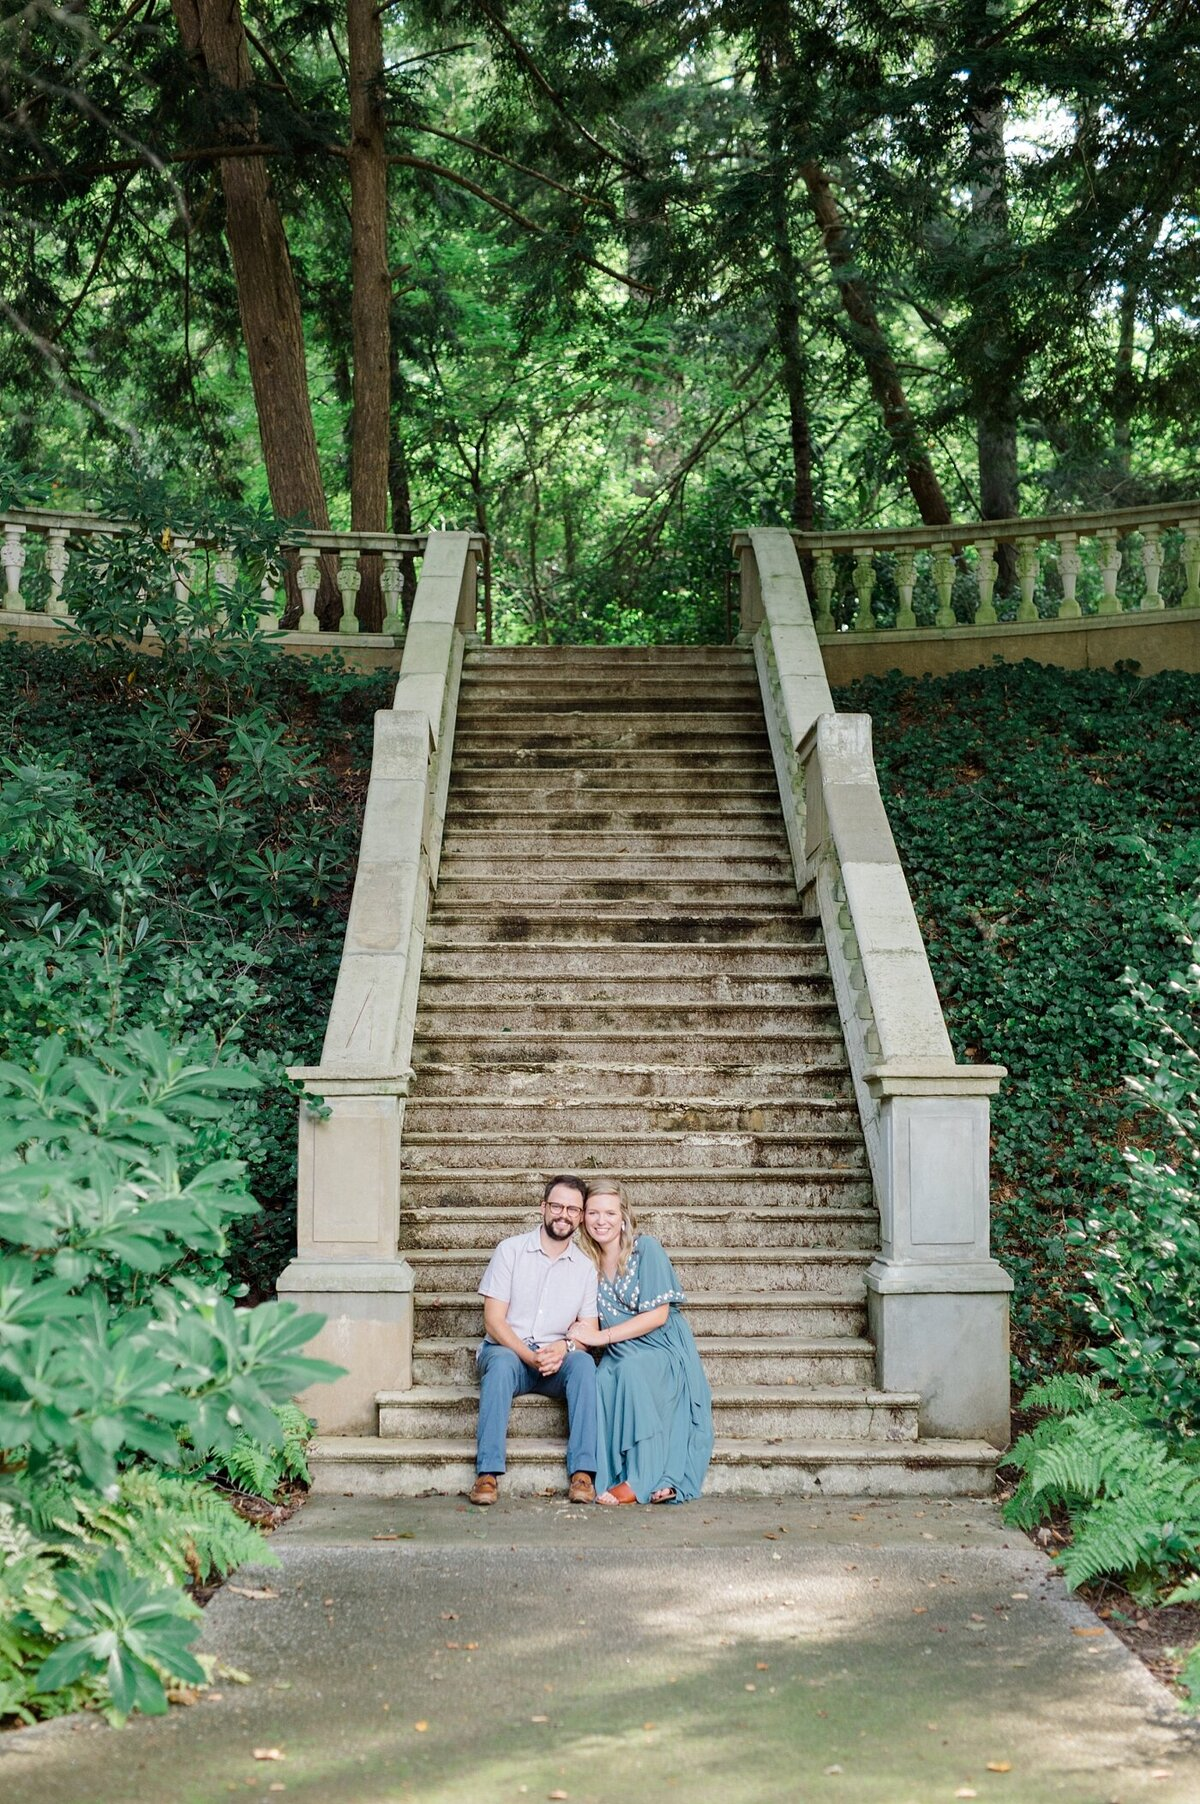 cator-woolford-gardens-engagement-wedding-photographer-laura-barnes-photo-shackelford-13